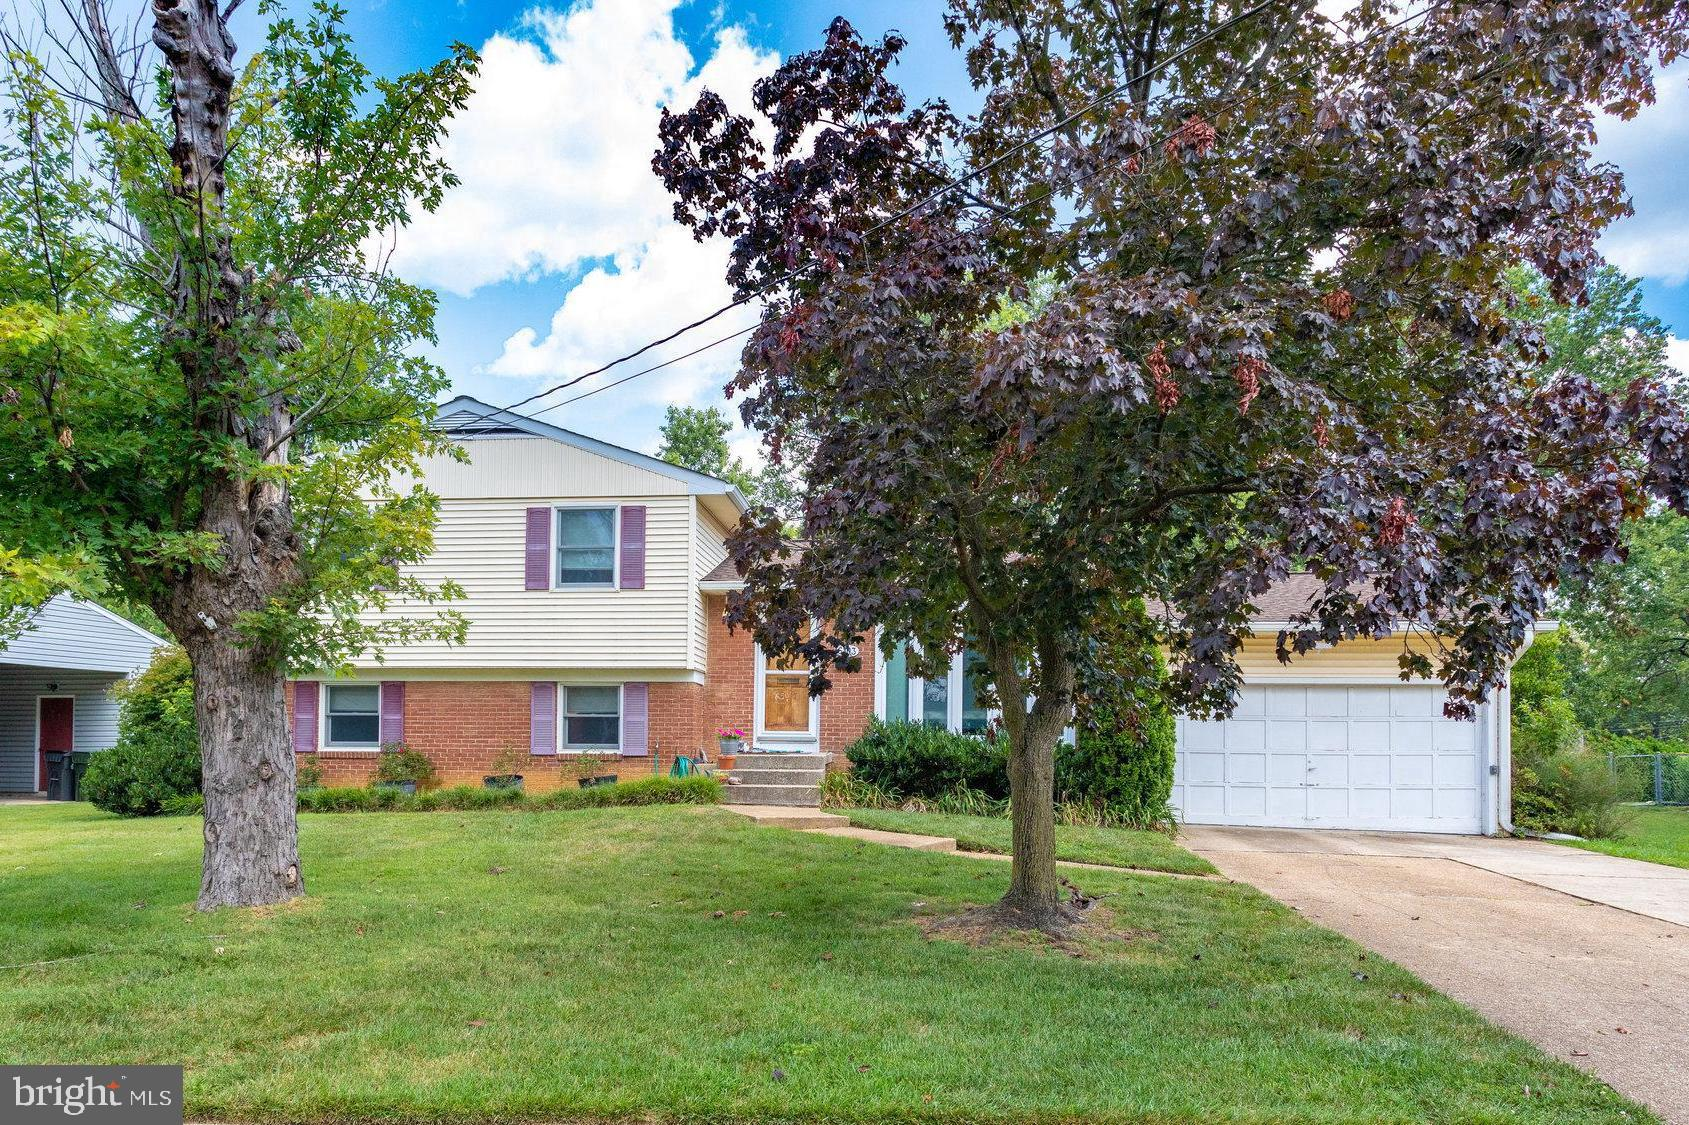 Beautiful 4 bed 2 bath home with ample natural lighting and hardwood floors throughout the main leve